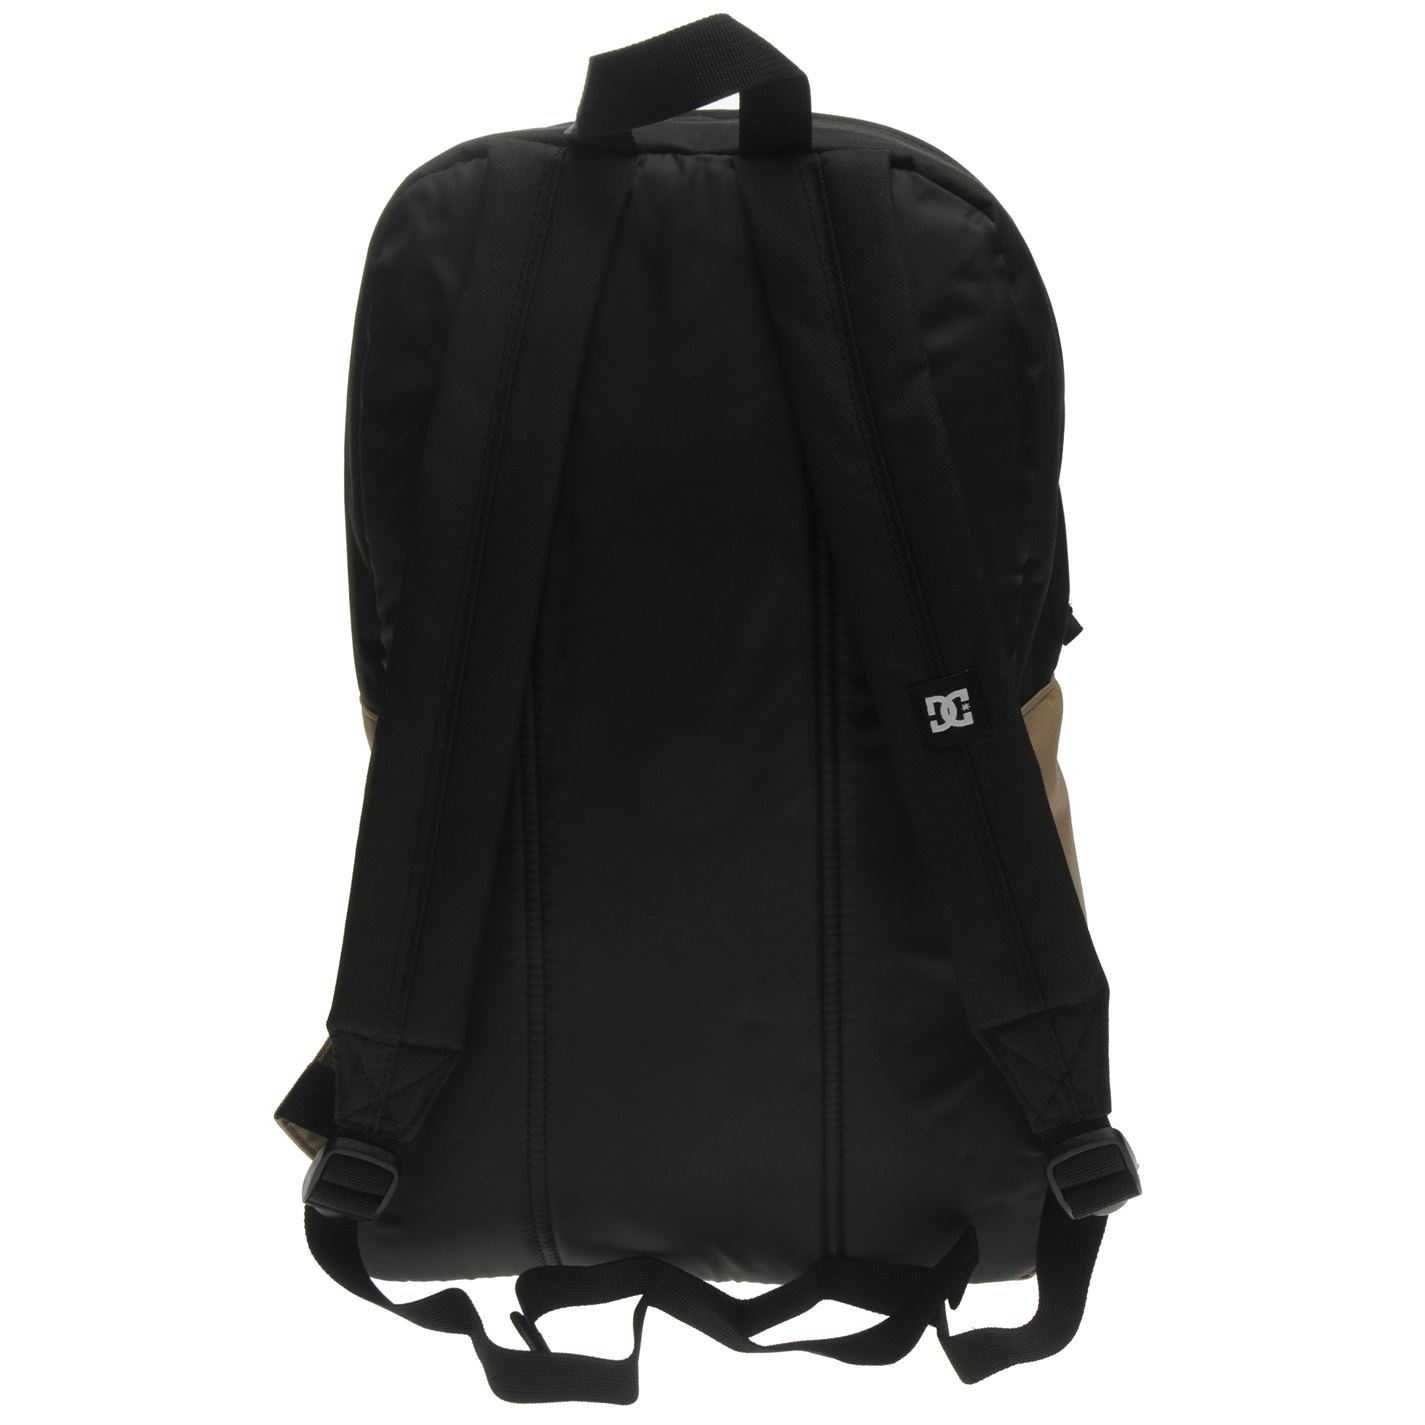 1ddf08990f77 DC Daylie Colourblock Back Pack Rucksack Bag Travel Luggage Casual ...